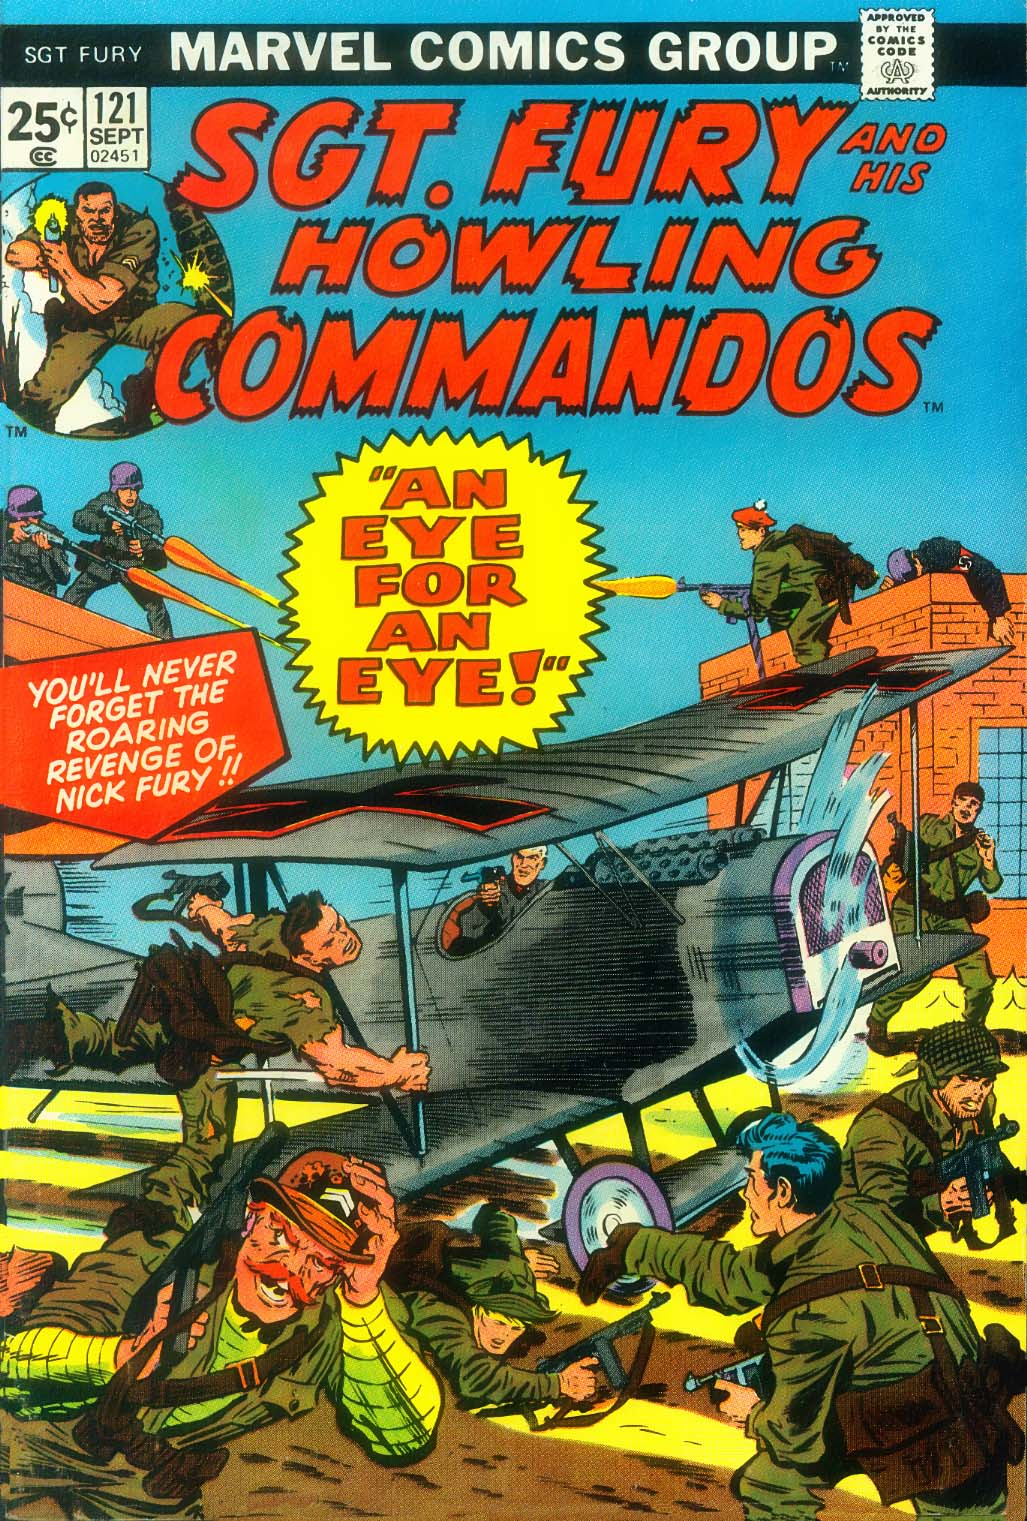 Read online Sgt. Fury comic -  Issue #121 - 1